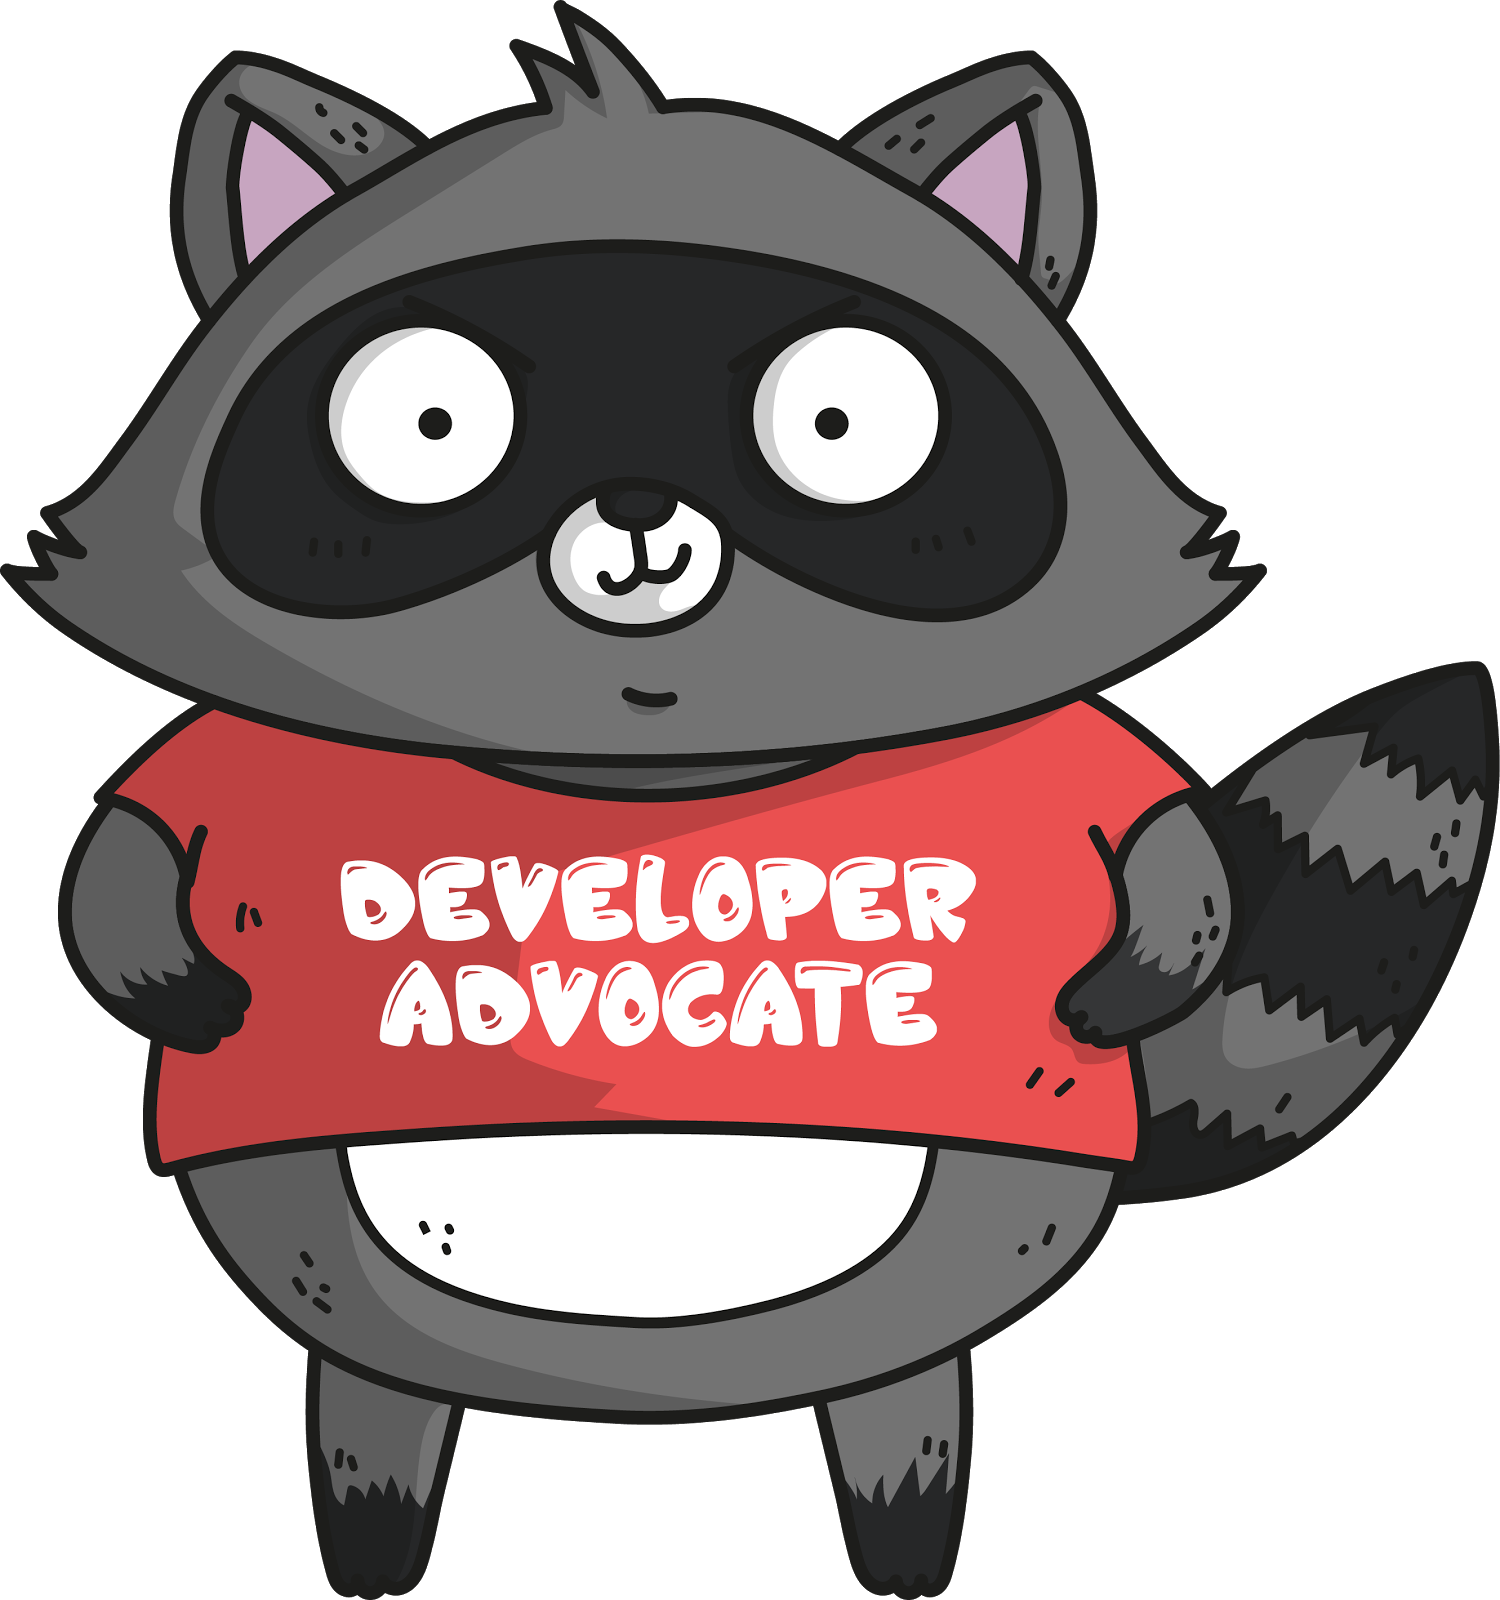 Cloud Developer Advocate